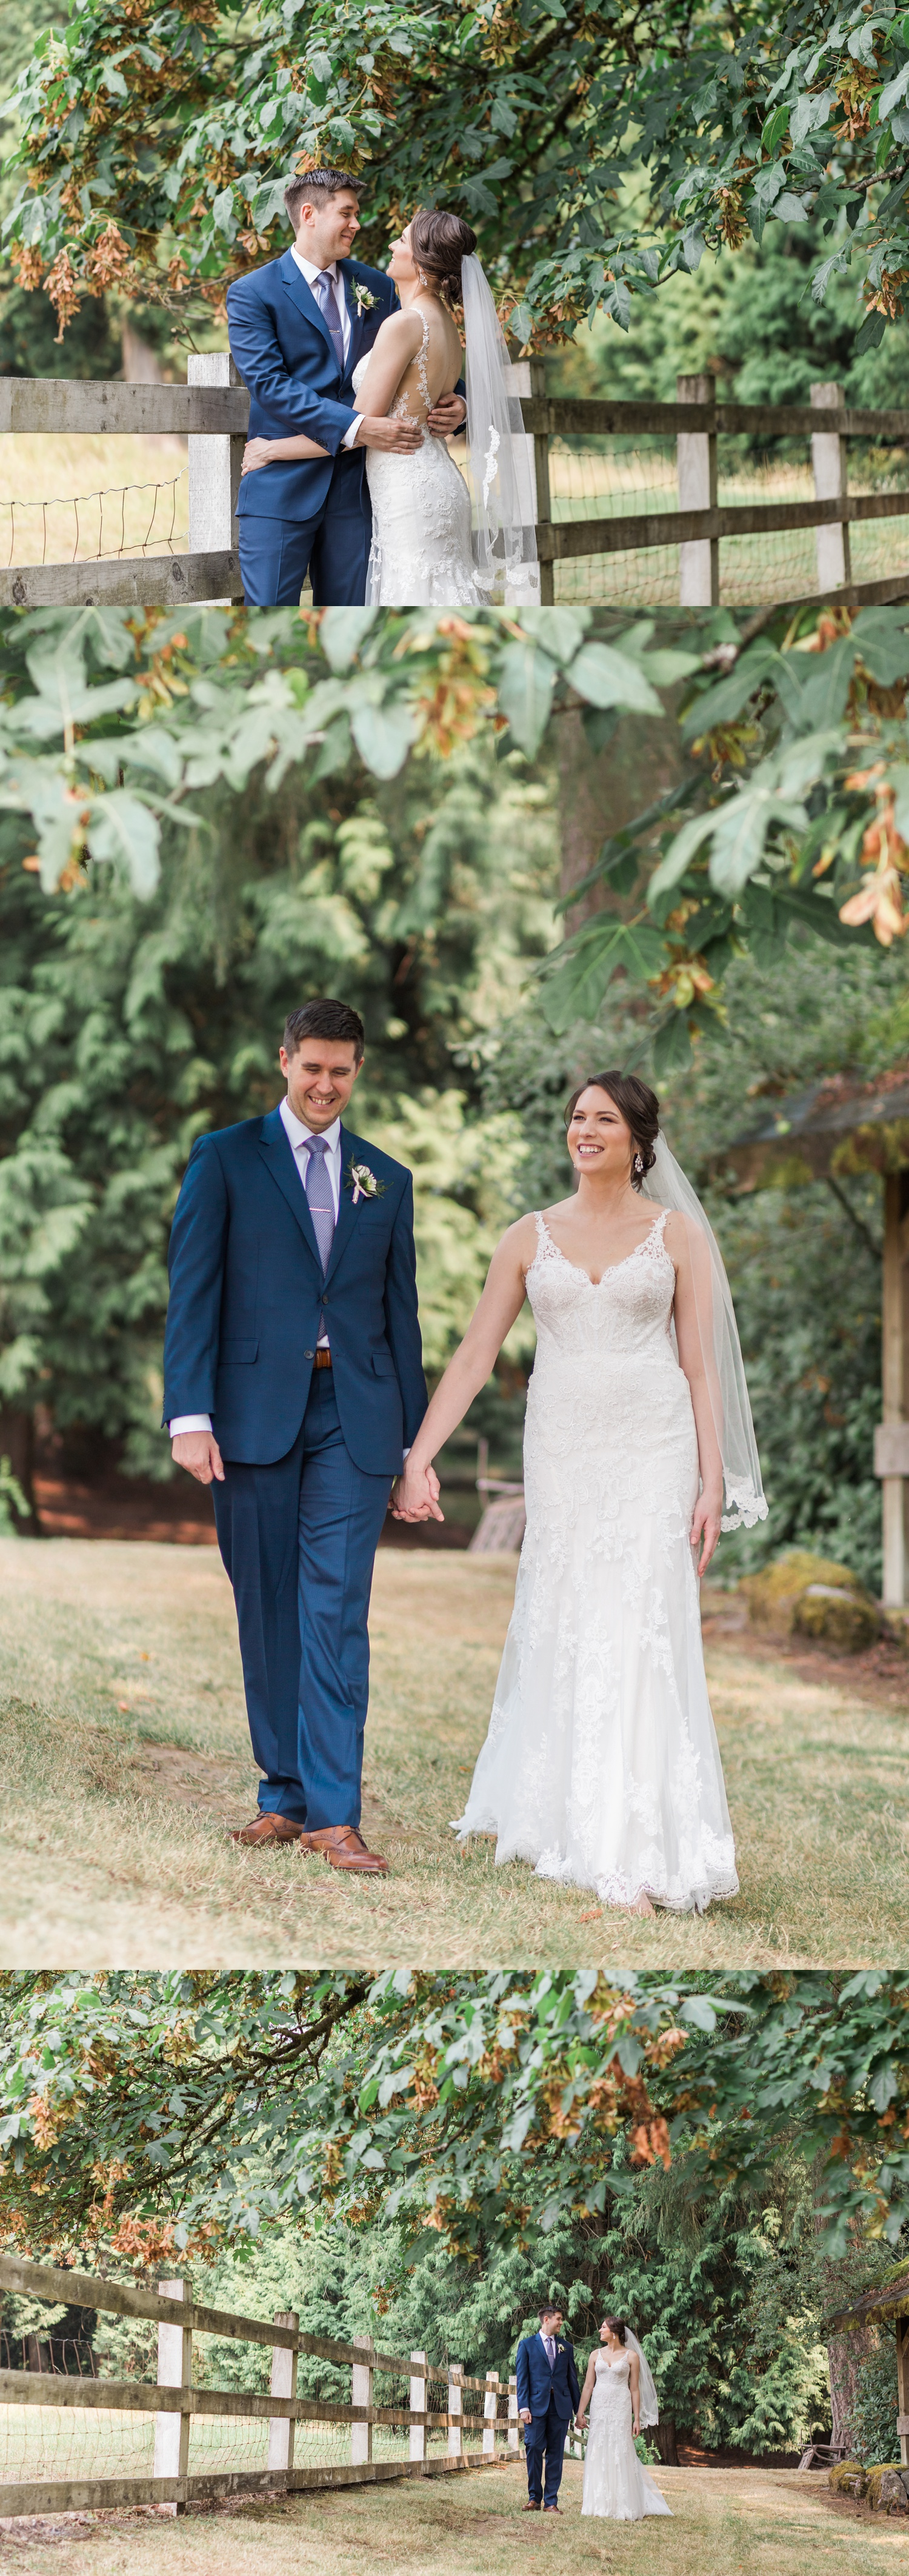 A bride and groom hold hands before their wedding at Chateau Lill in Woodinville, a wedding venue near Seattle, WA. | Joanna Monger Photography | Seattle & Snohomish Photographer